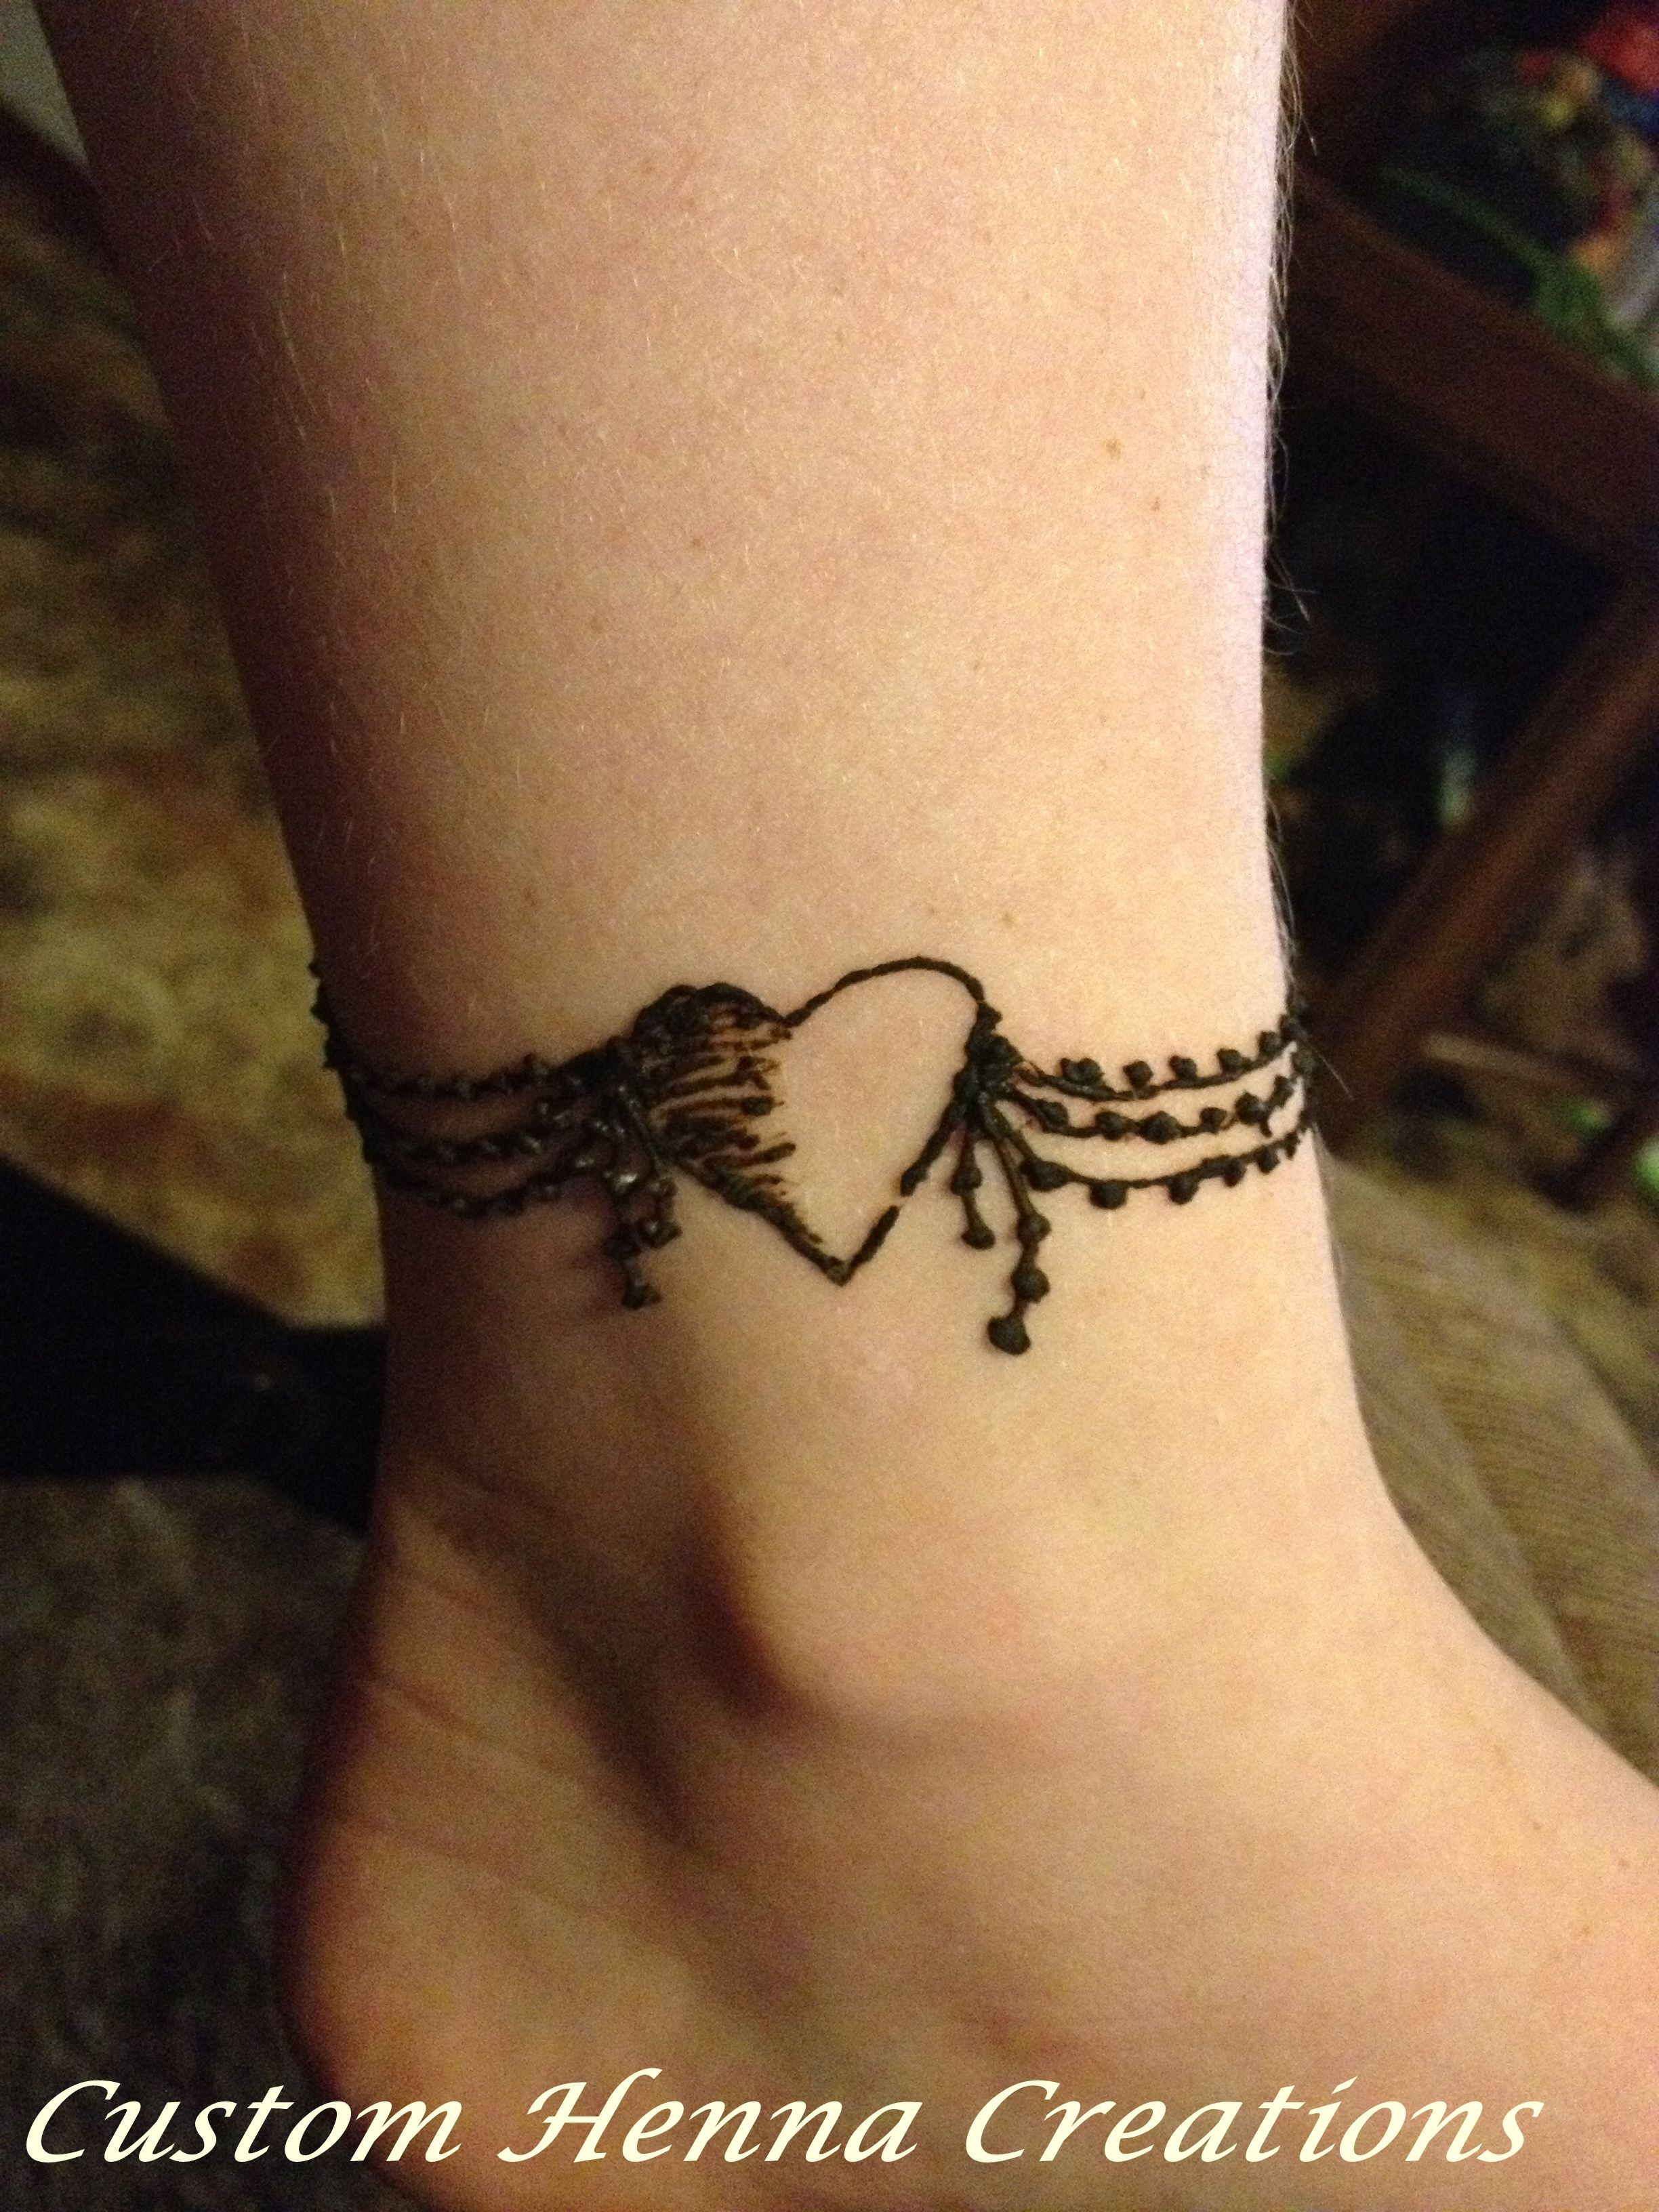 Heart Henna Tattoos: Henna On Ankle, Mehndi, Heart Wrap-around Design, On Child